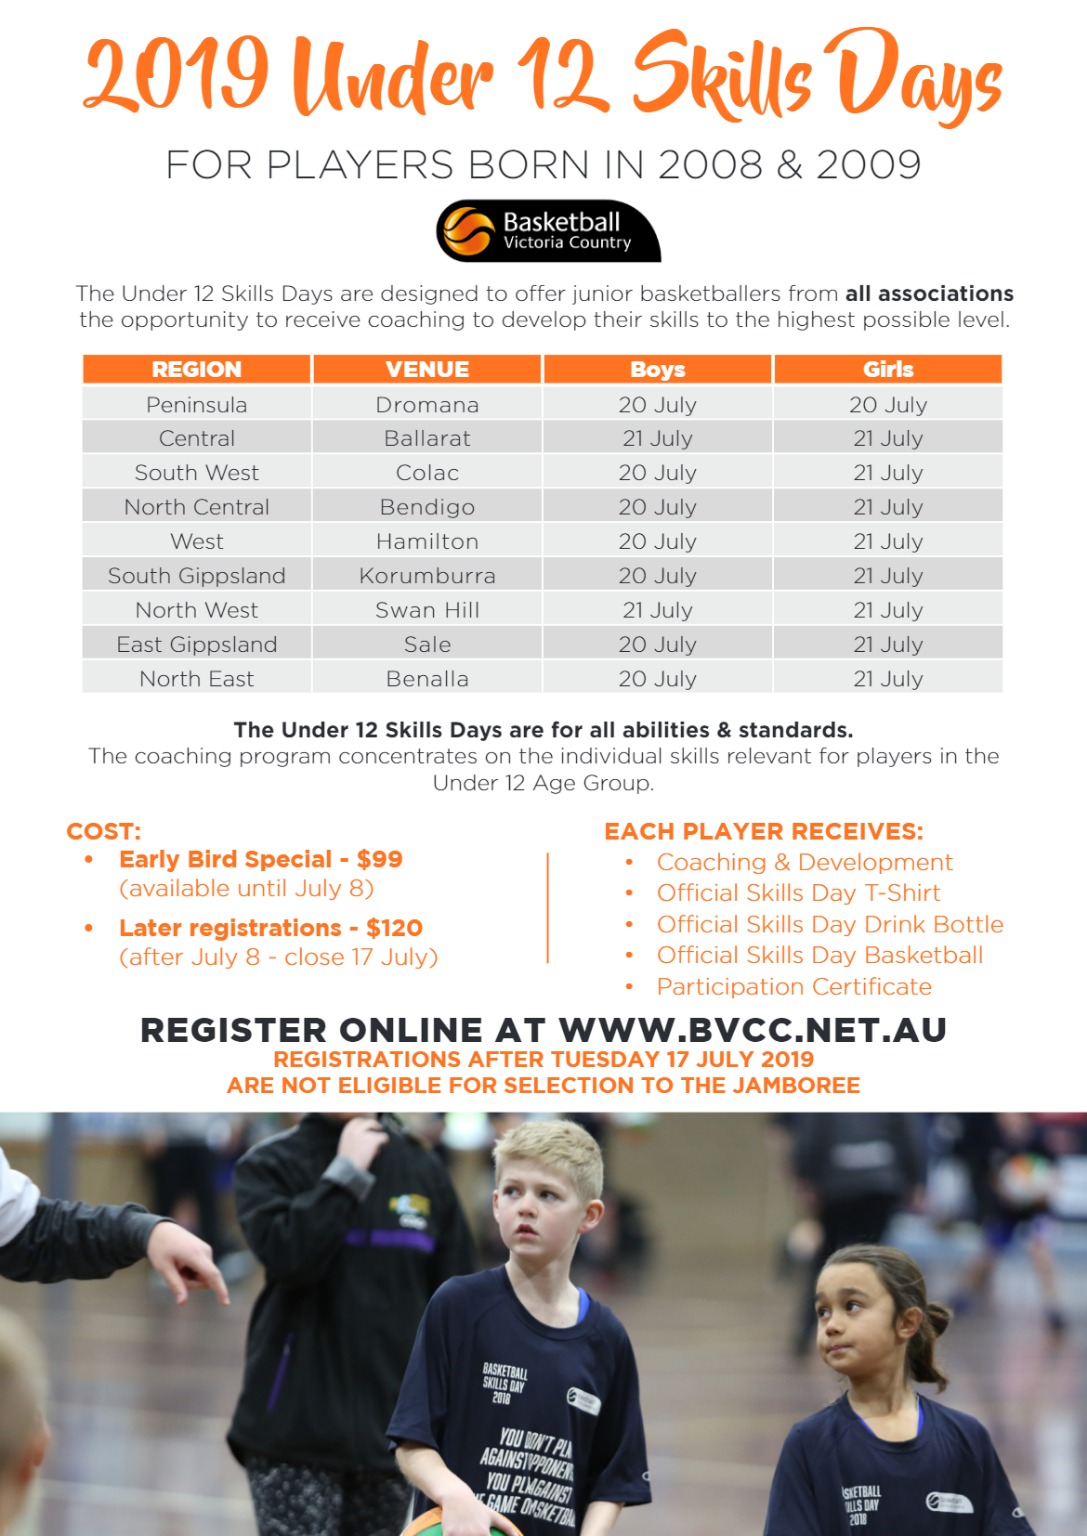 BVC Under 12 Skills Days 2019 - Wangaratta Basketball Association